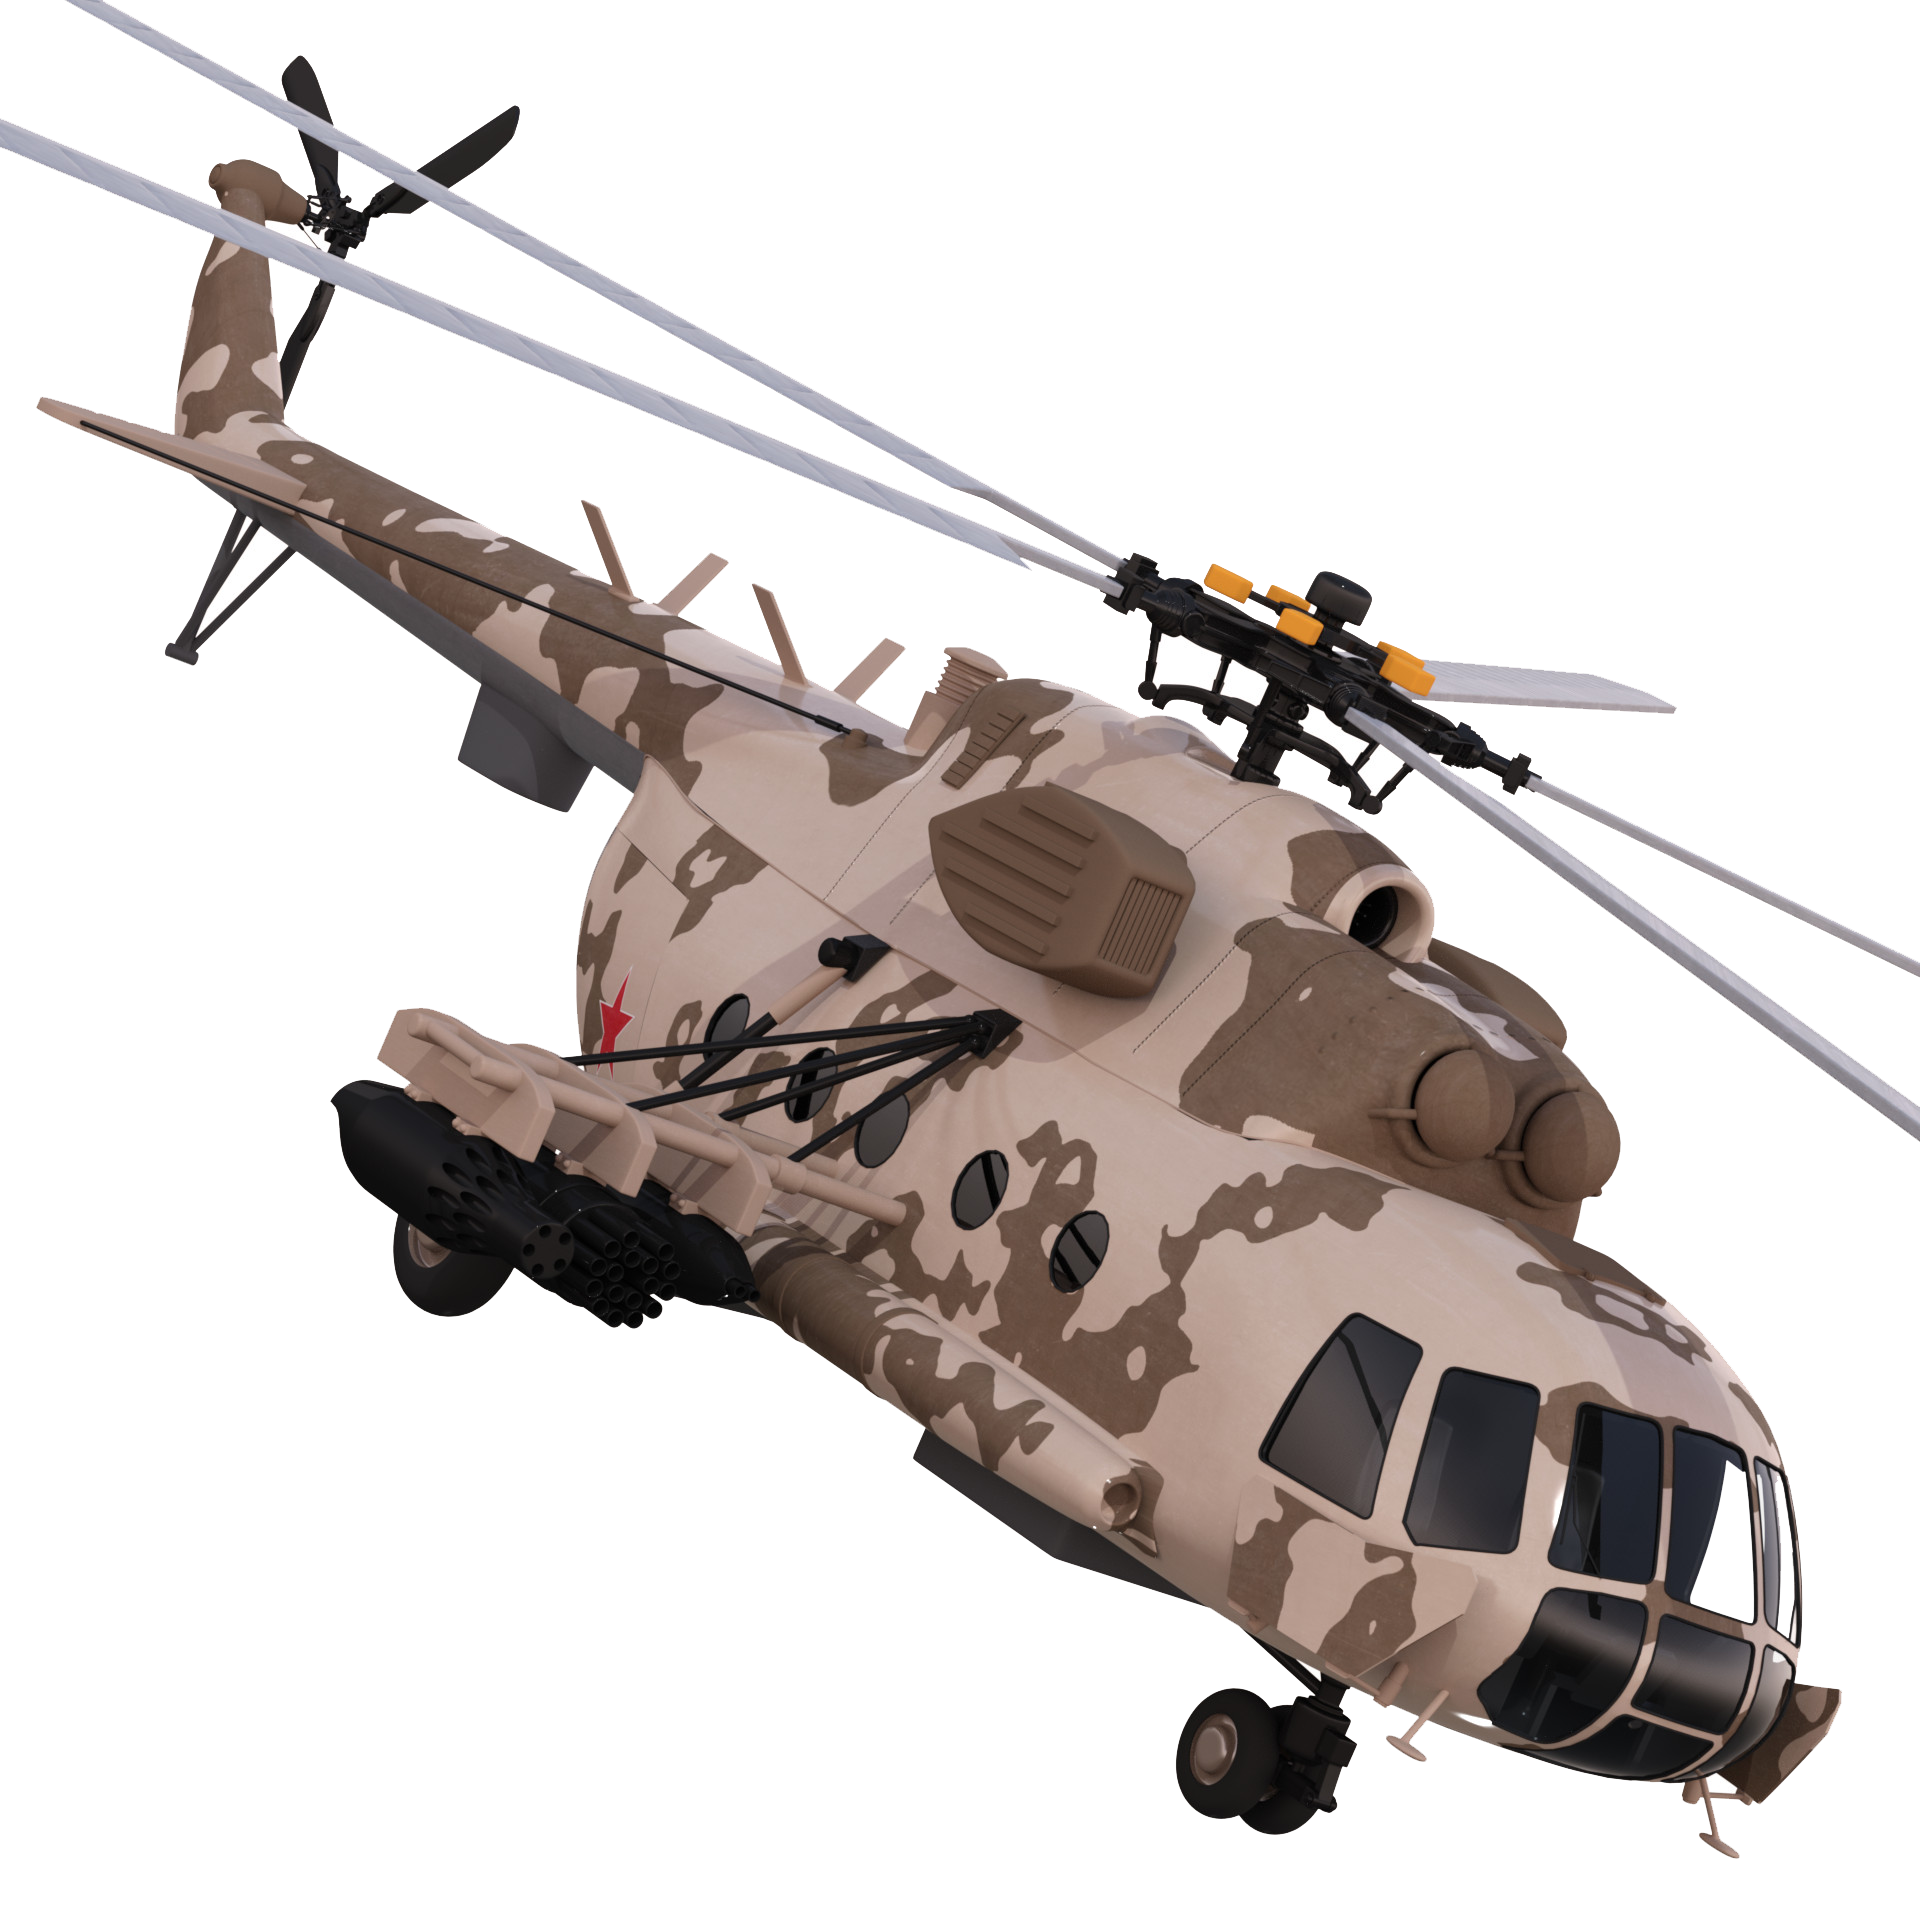 Military Helicopter Png image #40850